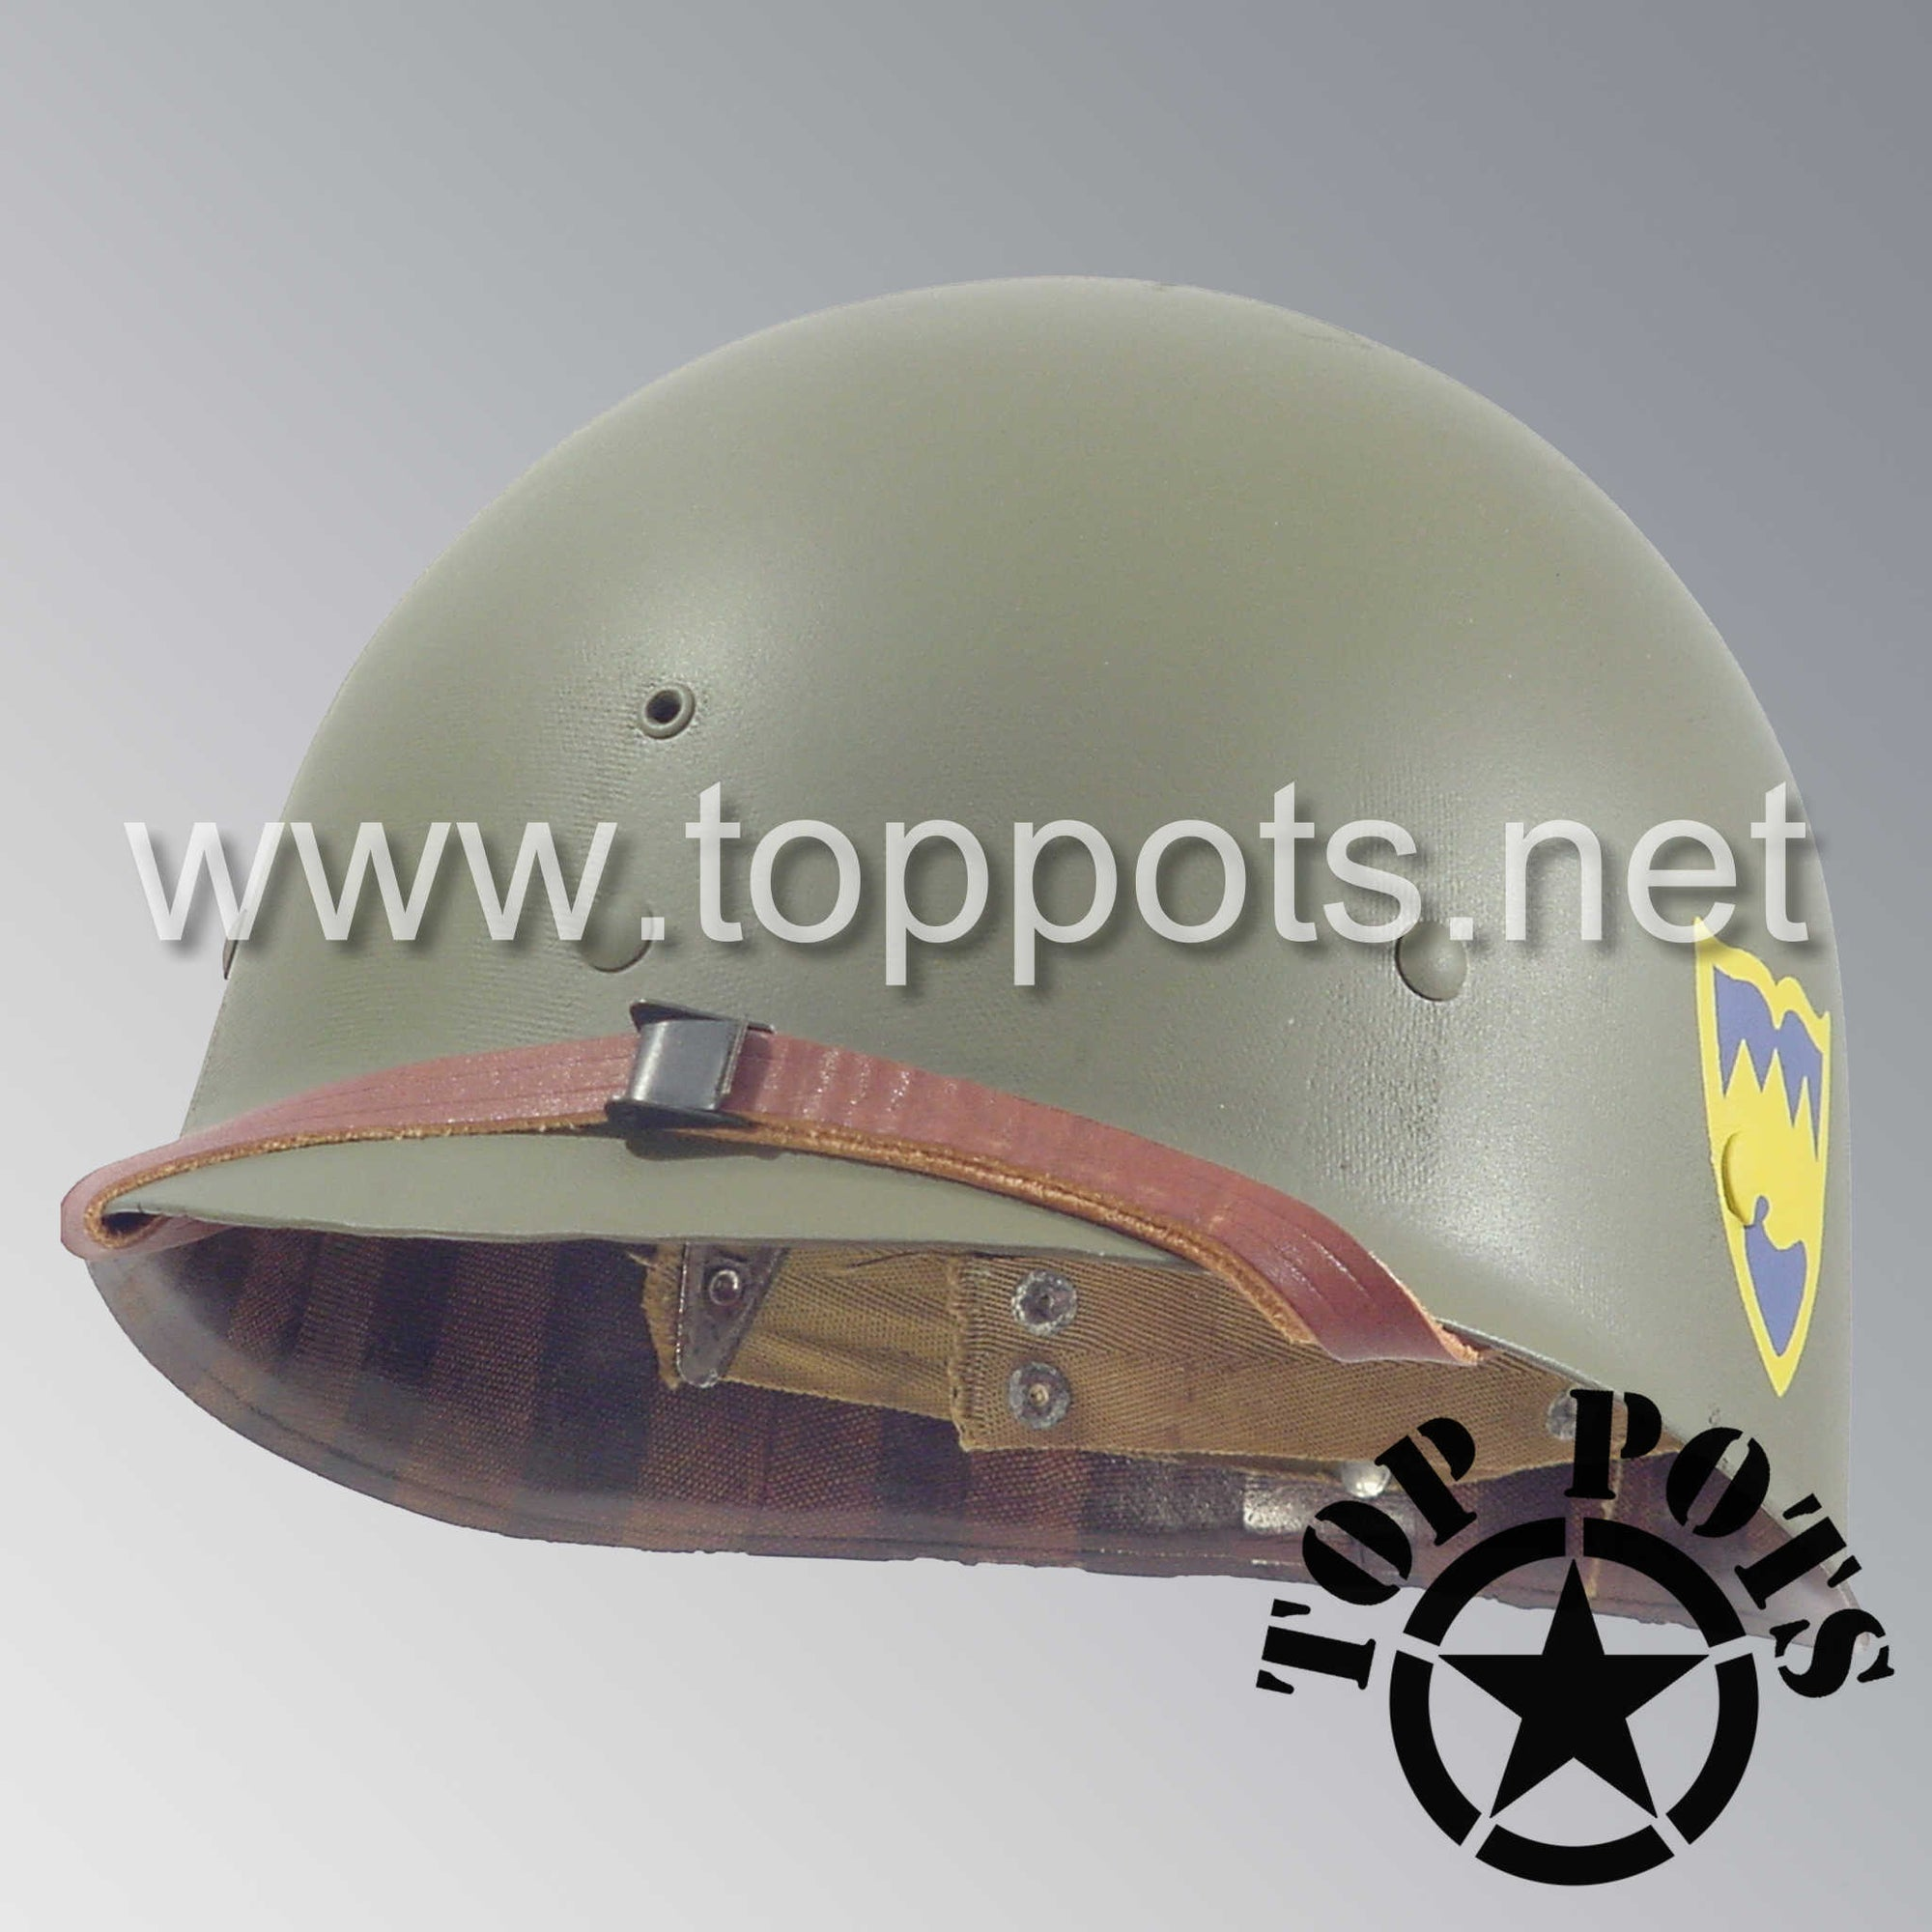 Image 1 of WWII US Army Restored Original M1 Infantry Helmet Liner with 104th Infantry Division 415th Regiment Emblem